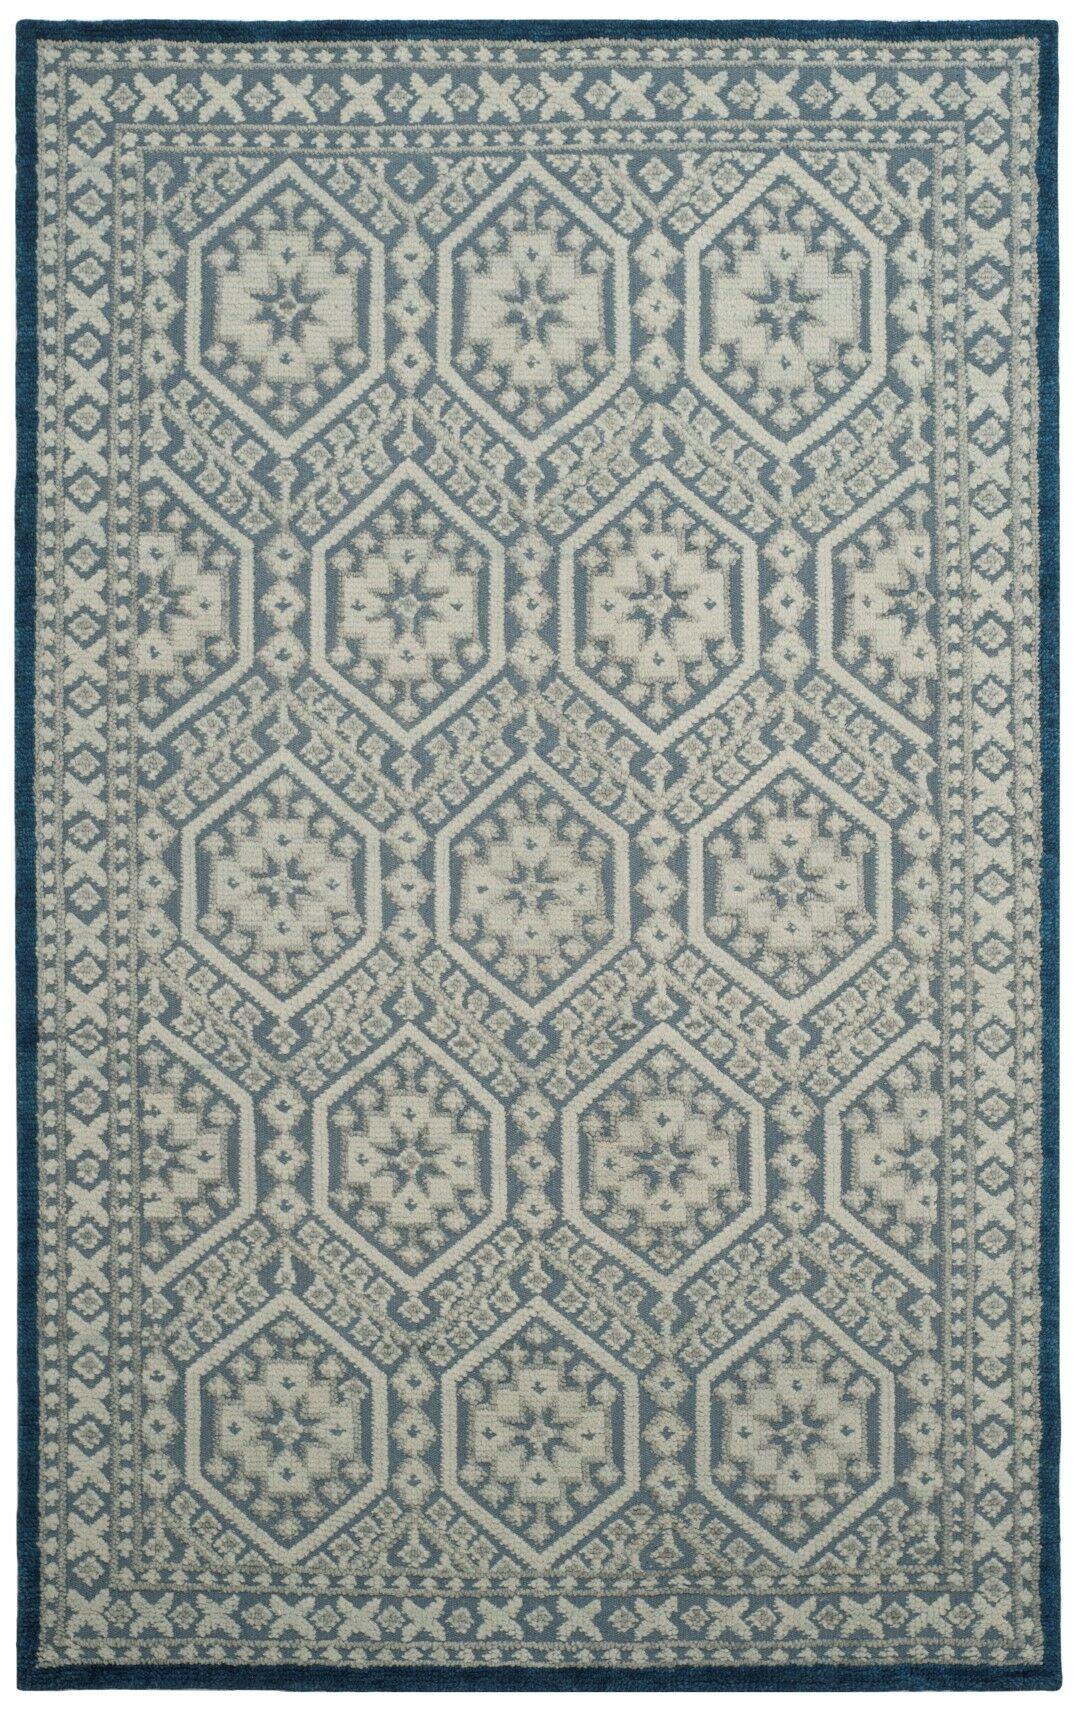 Baum Hand-Knotted Blue Area Rug Rug Size: Rectangle 6' x 9'